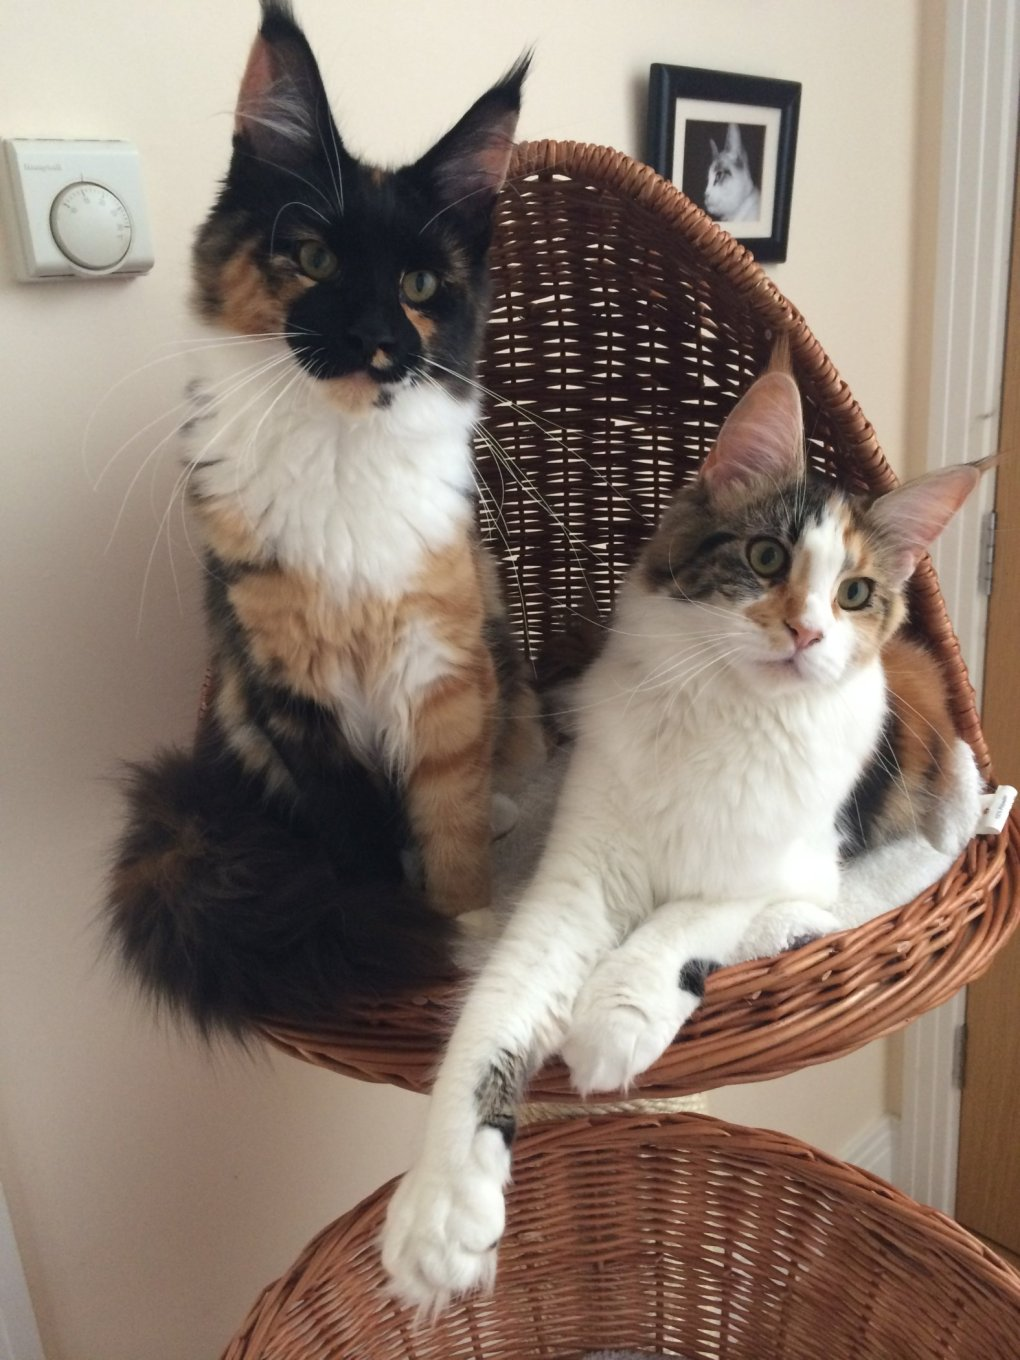 How to Find the Best Cat Scratching Tower for Your Cat - Katzenworld